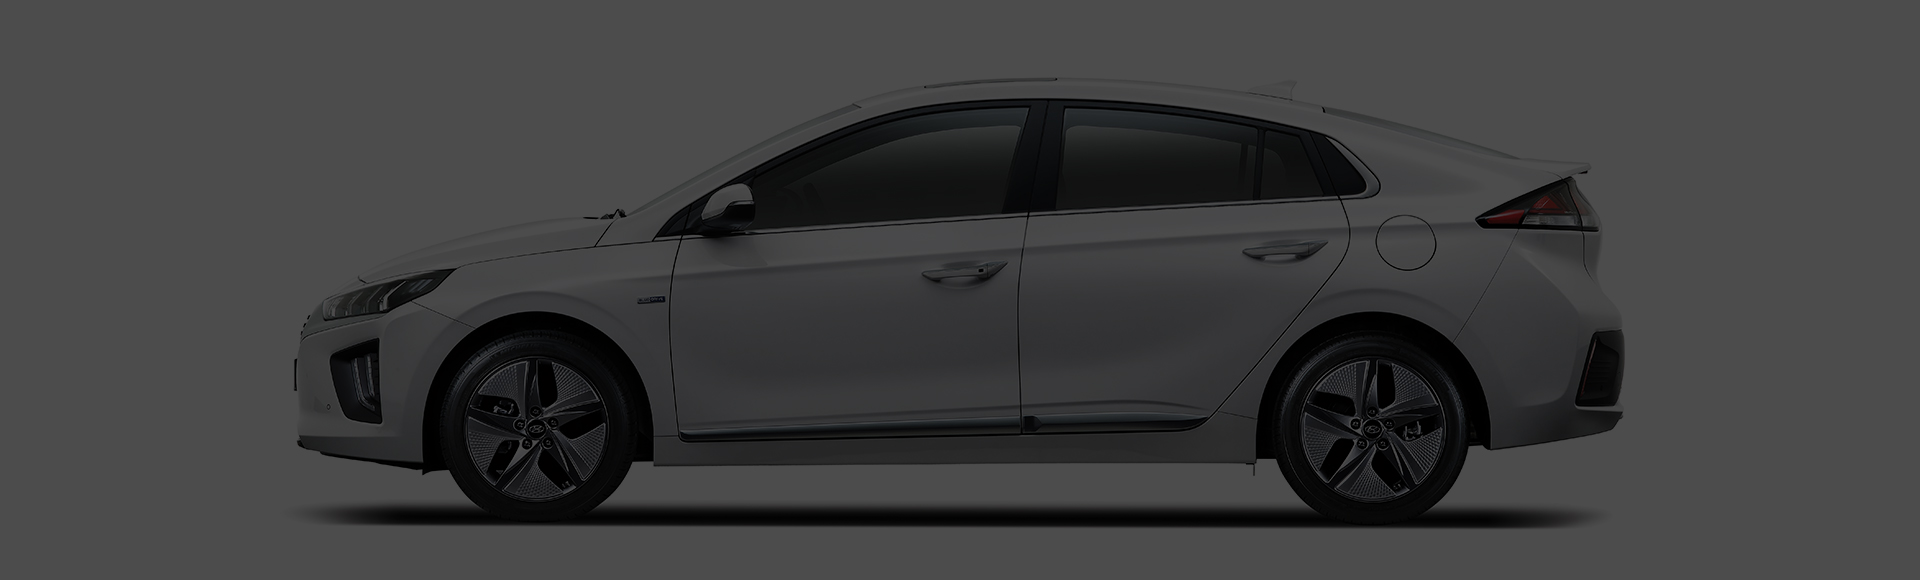 IONIQ hybrid exterior side design